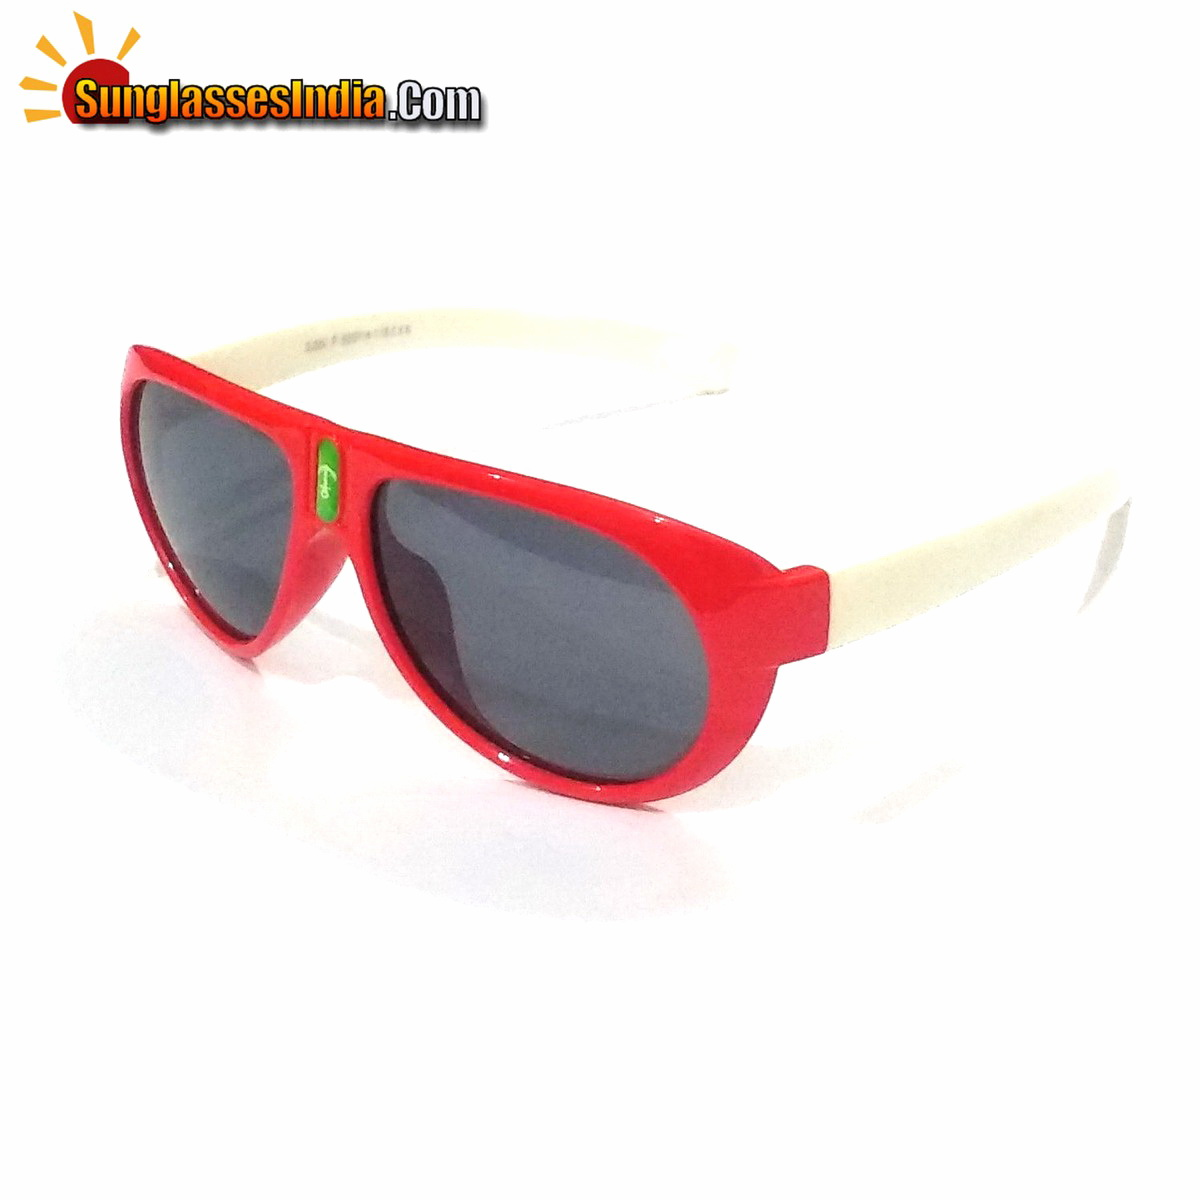 Unbreakable Kids Polarized Sunglasses Light Weight TR Material S824RedWhite